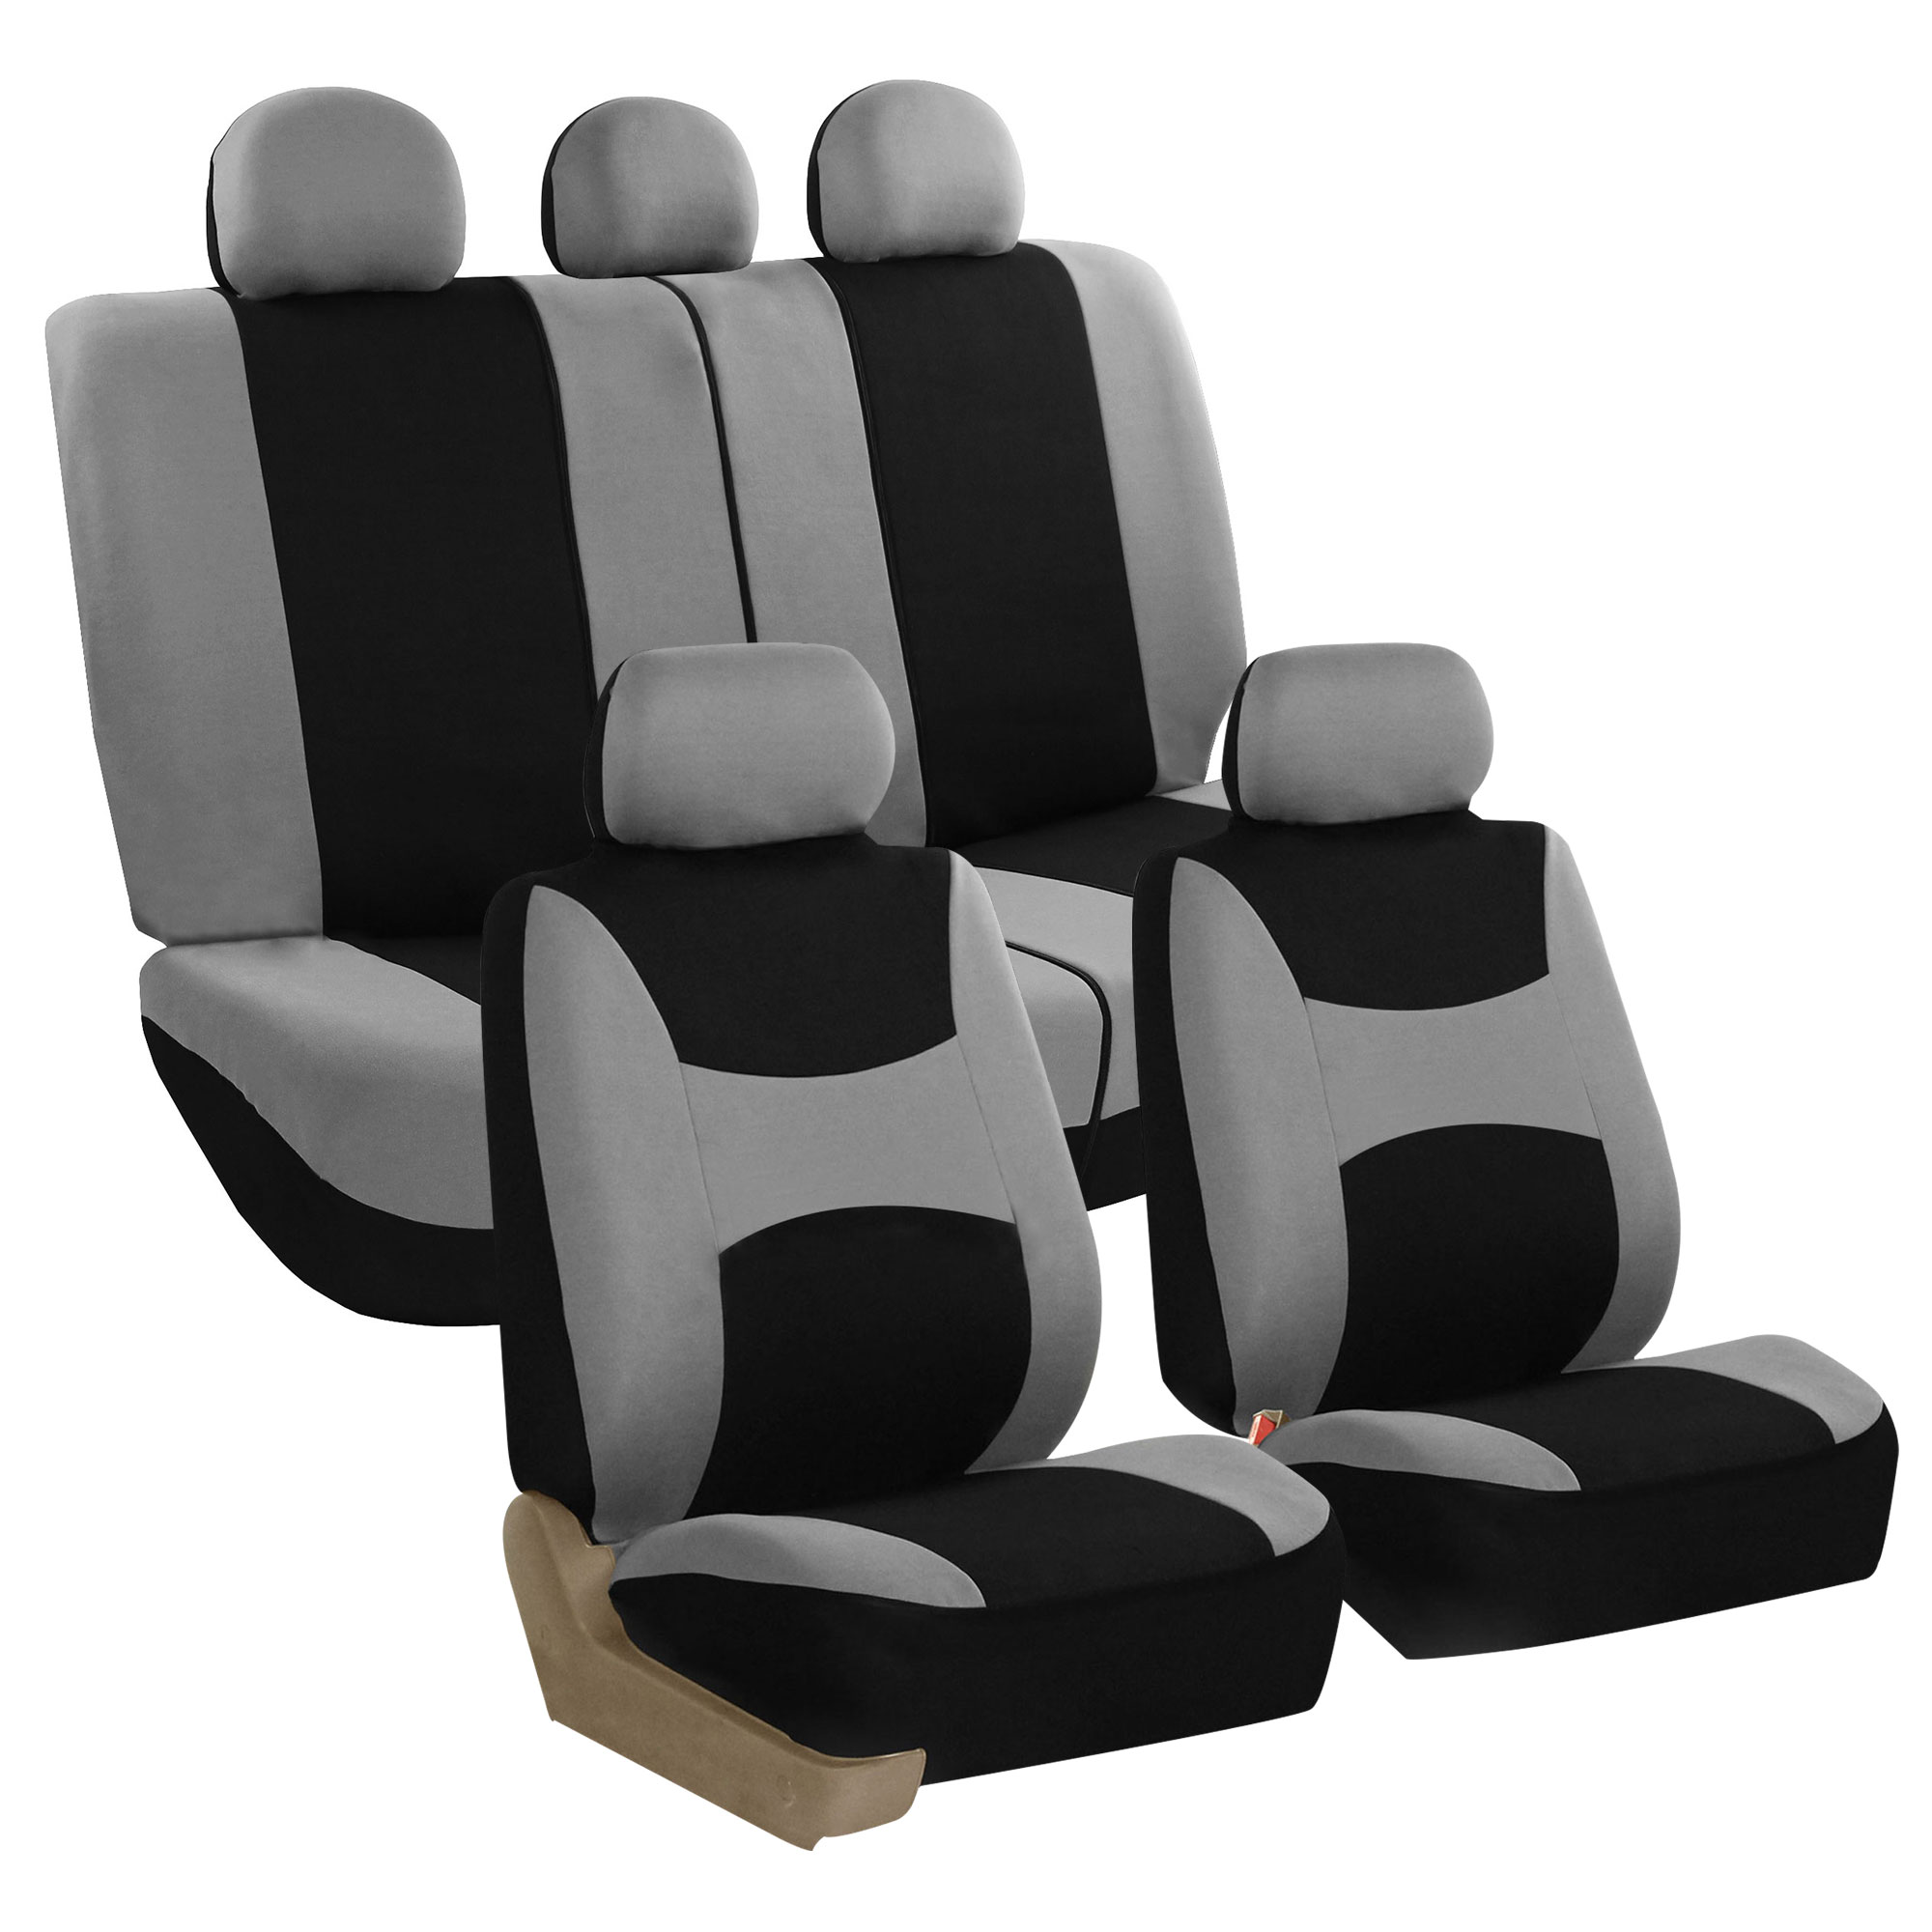 FB030 gray full set seat covers